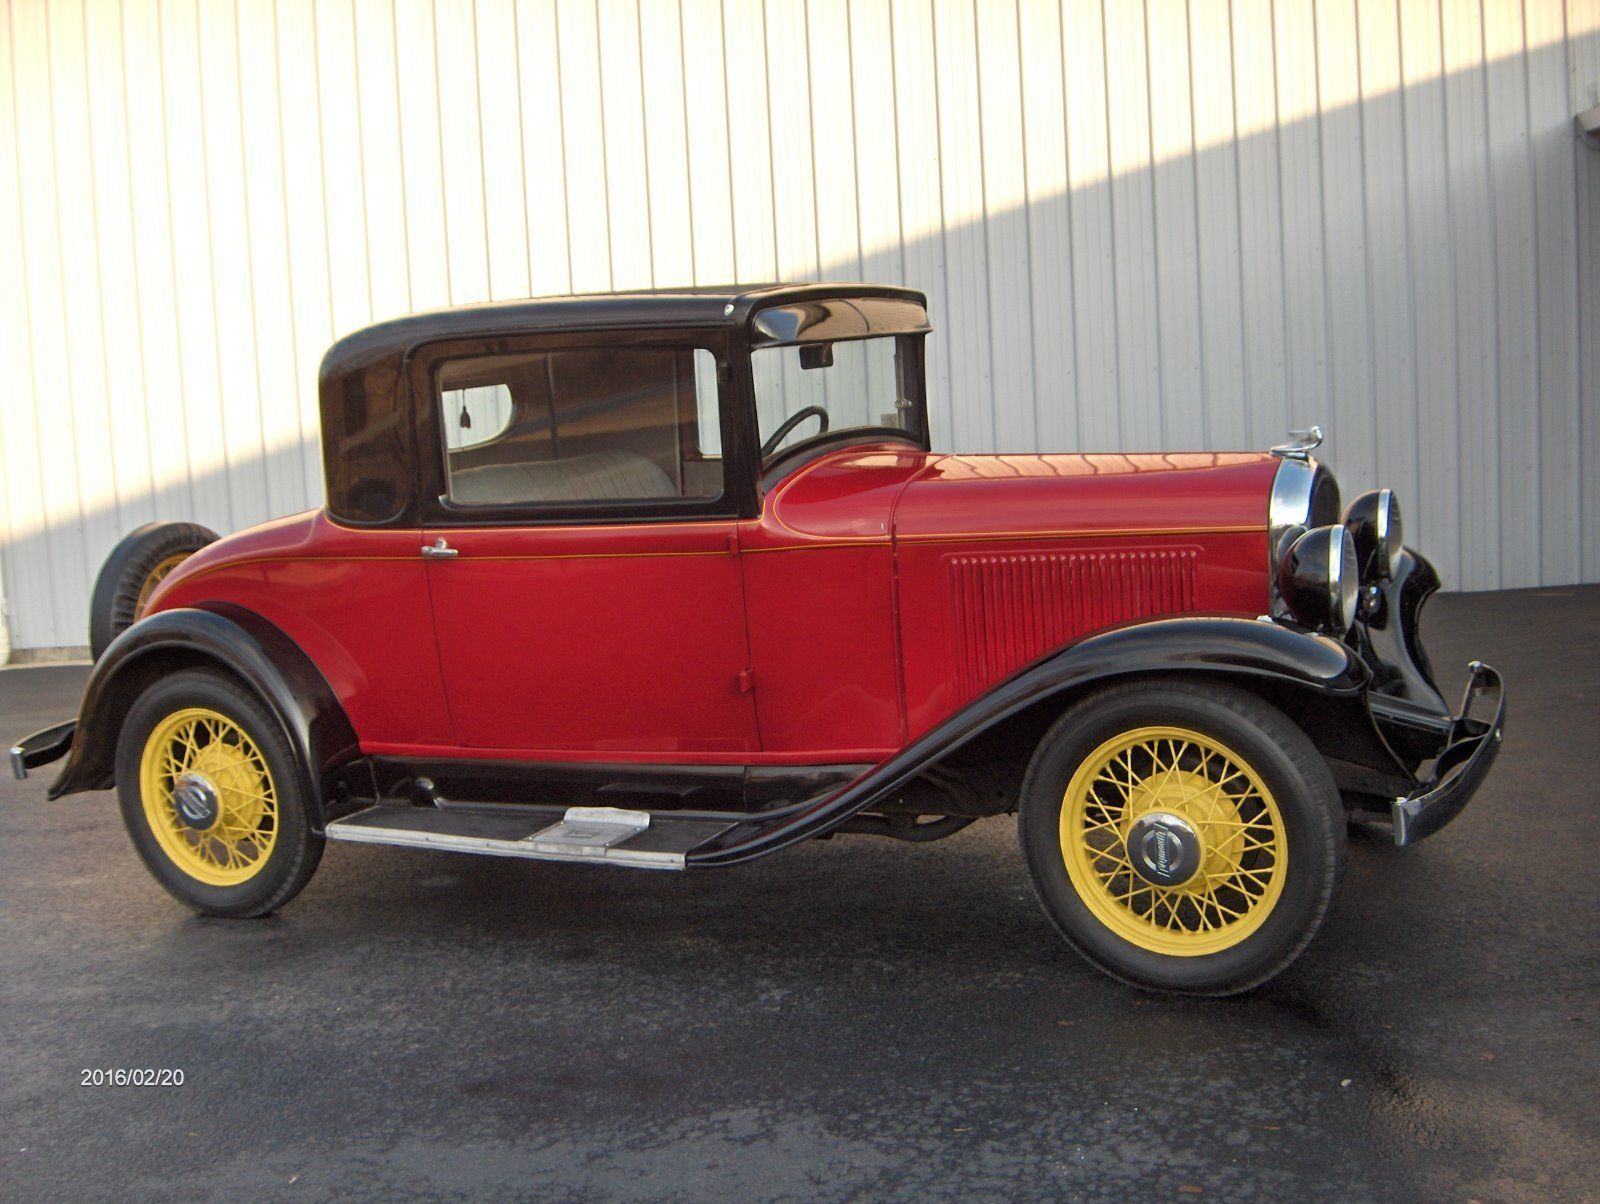 1932 Plymouth Coupe PA | Pre-war cars for sale | Pinterest ...